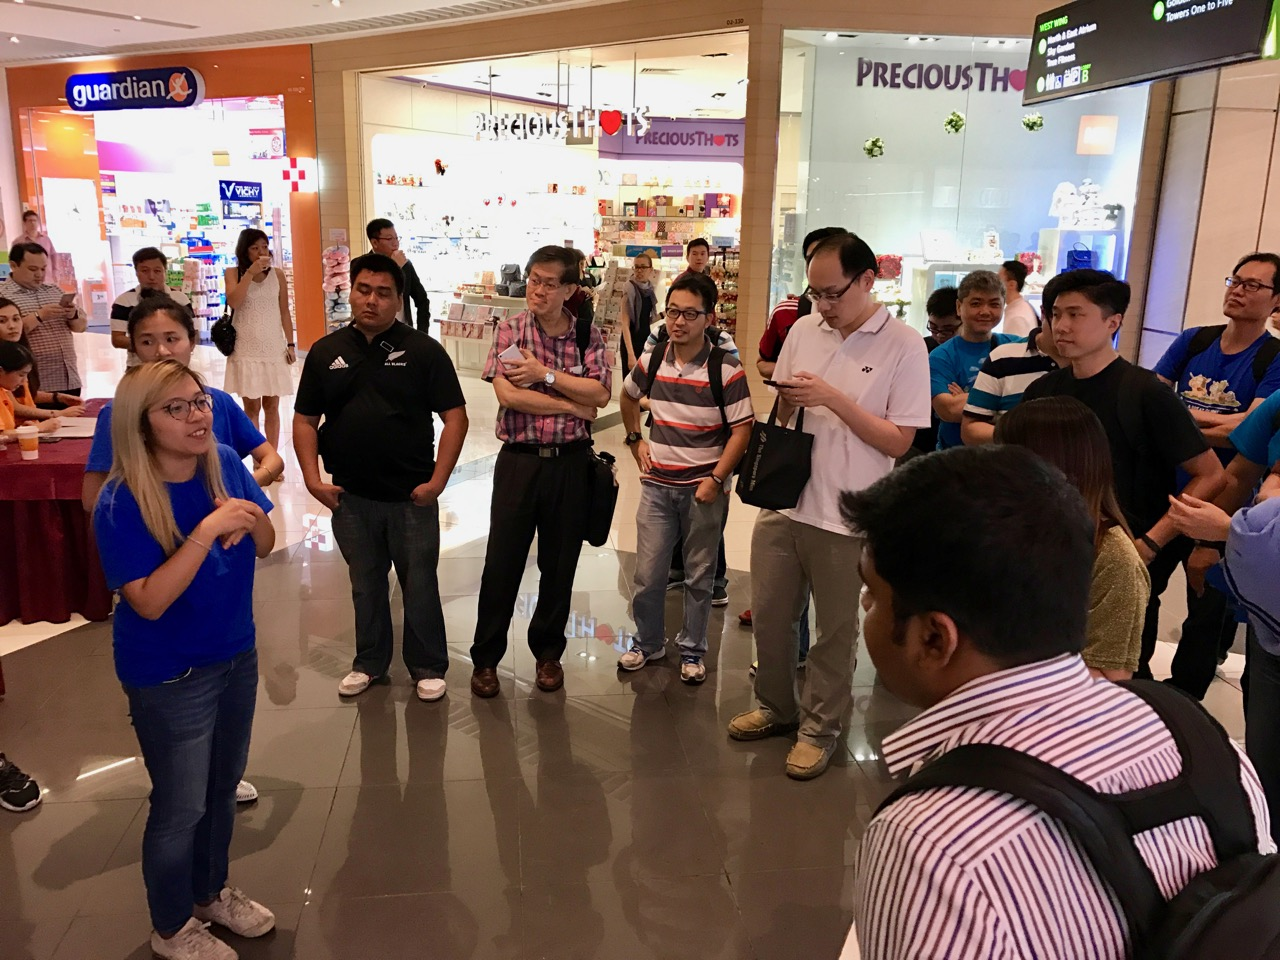 singapore-main-store-mi-fan-event-brief